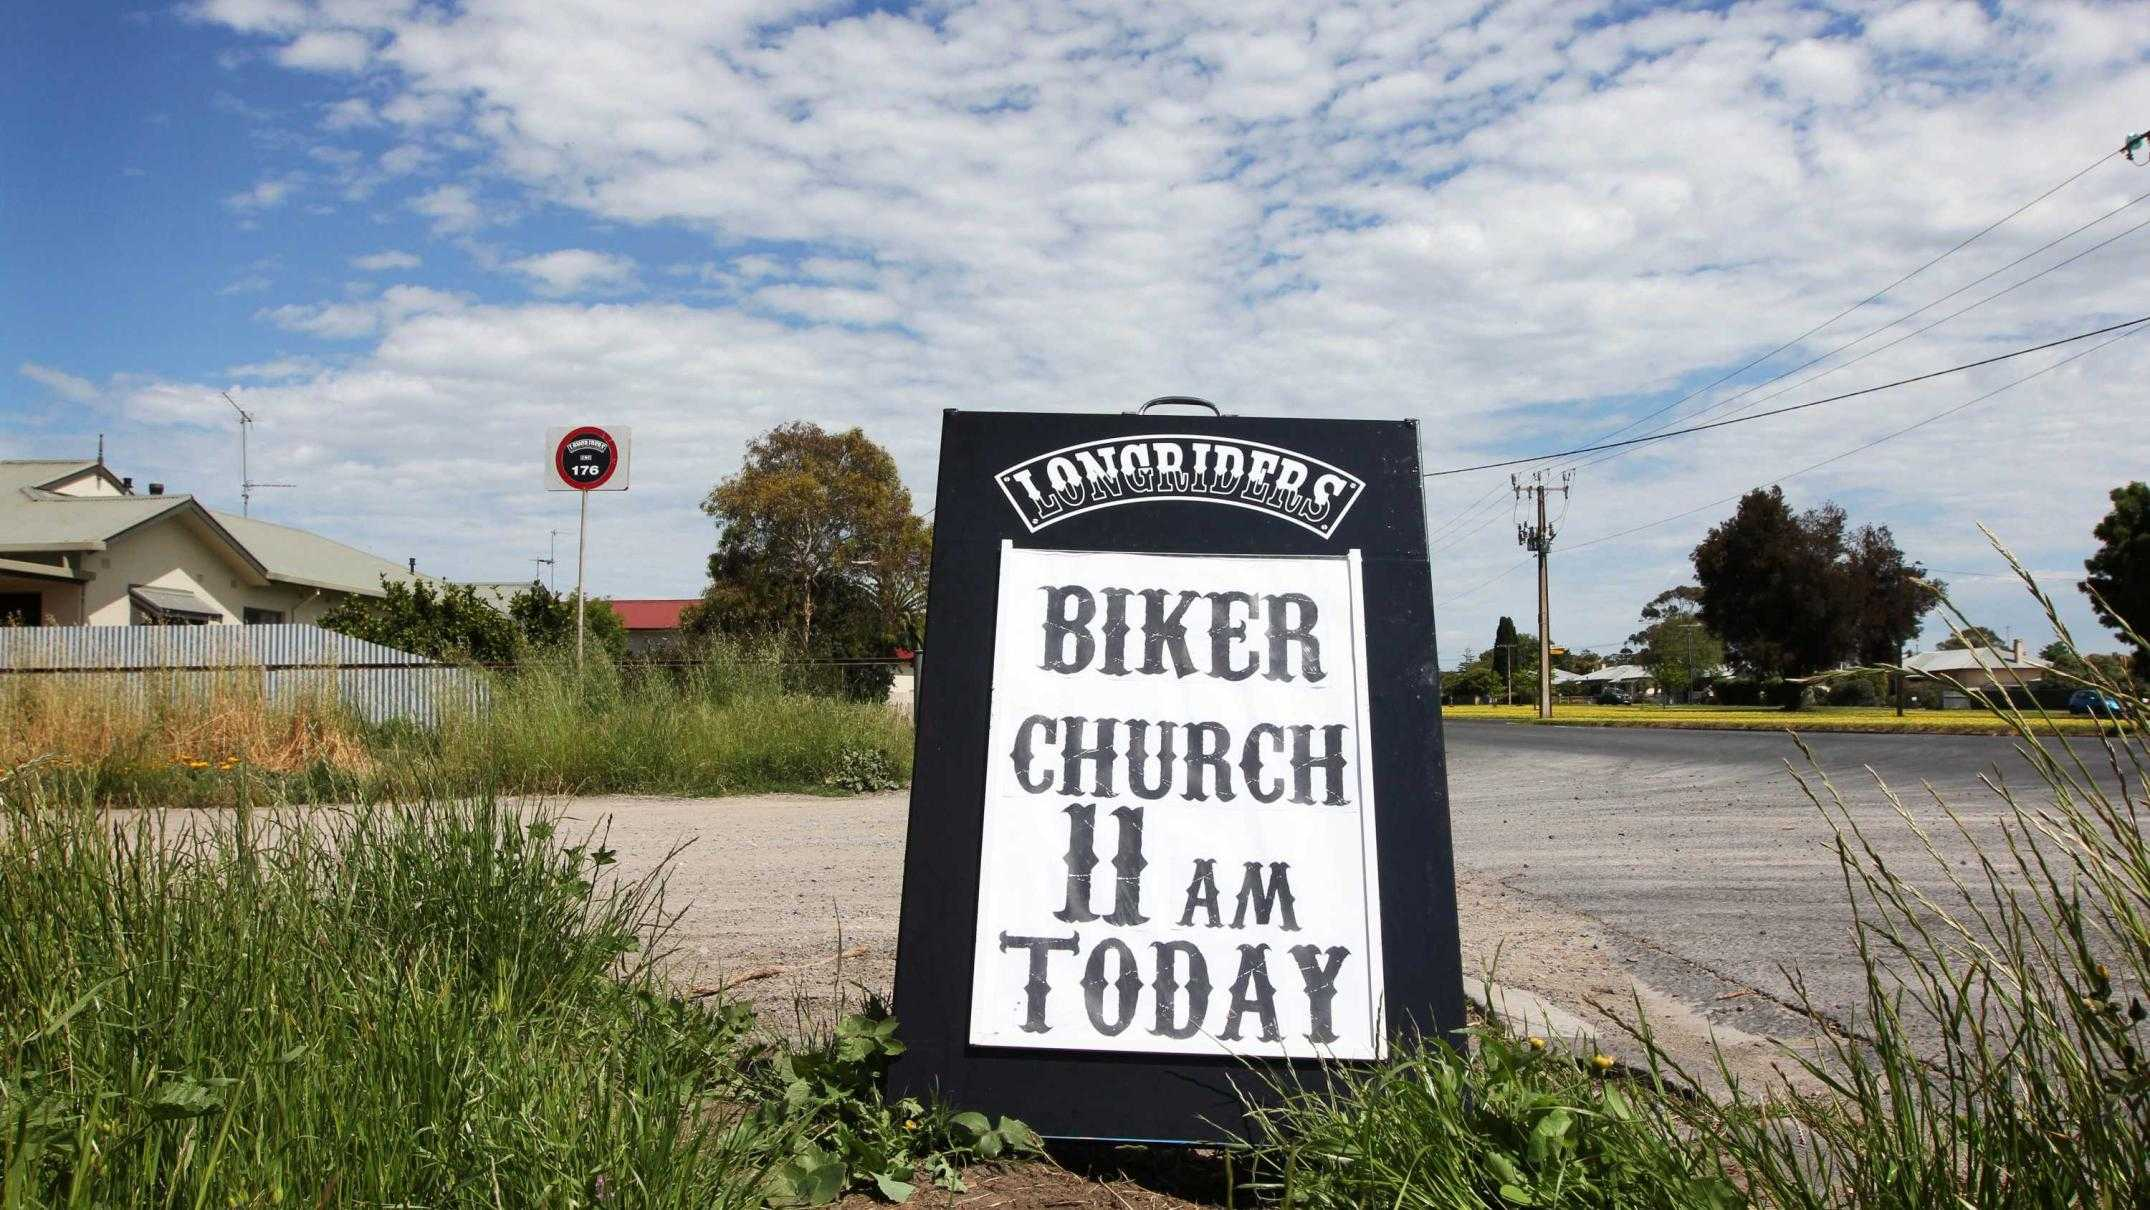 Cane toads Video Worksheet Answers and Biker Church An Unconventional House Of God Abc News Australian